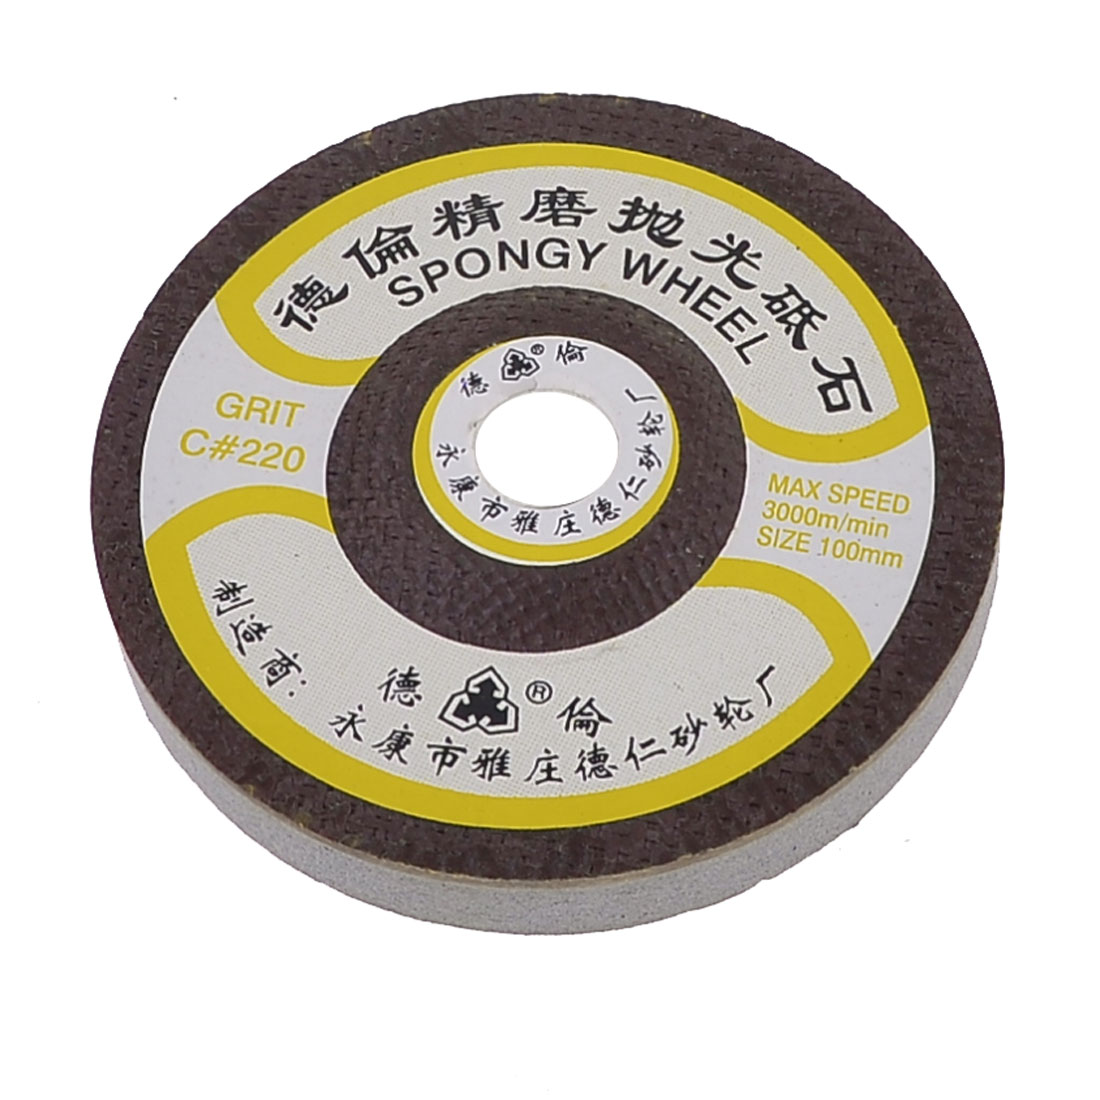 100mm x 16mm Abrasive Sponge Wheel Polishing Gringding Tool